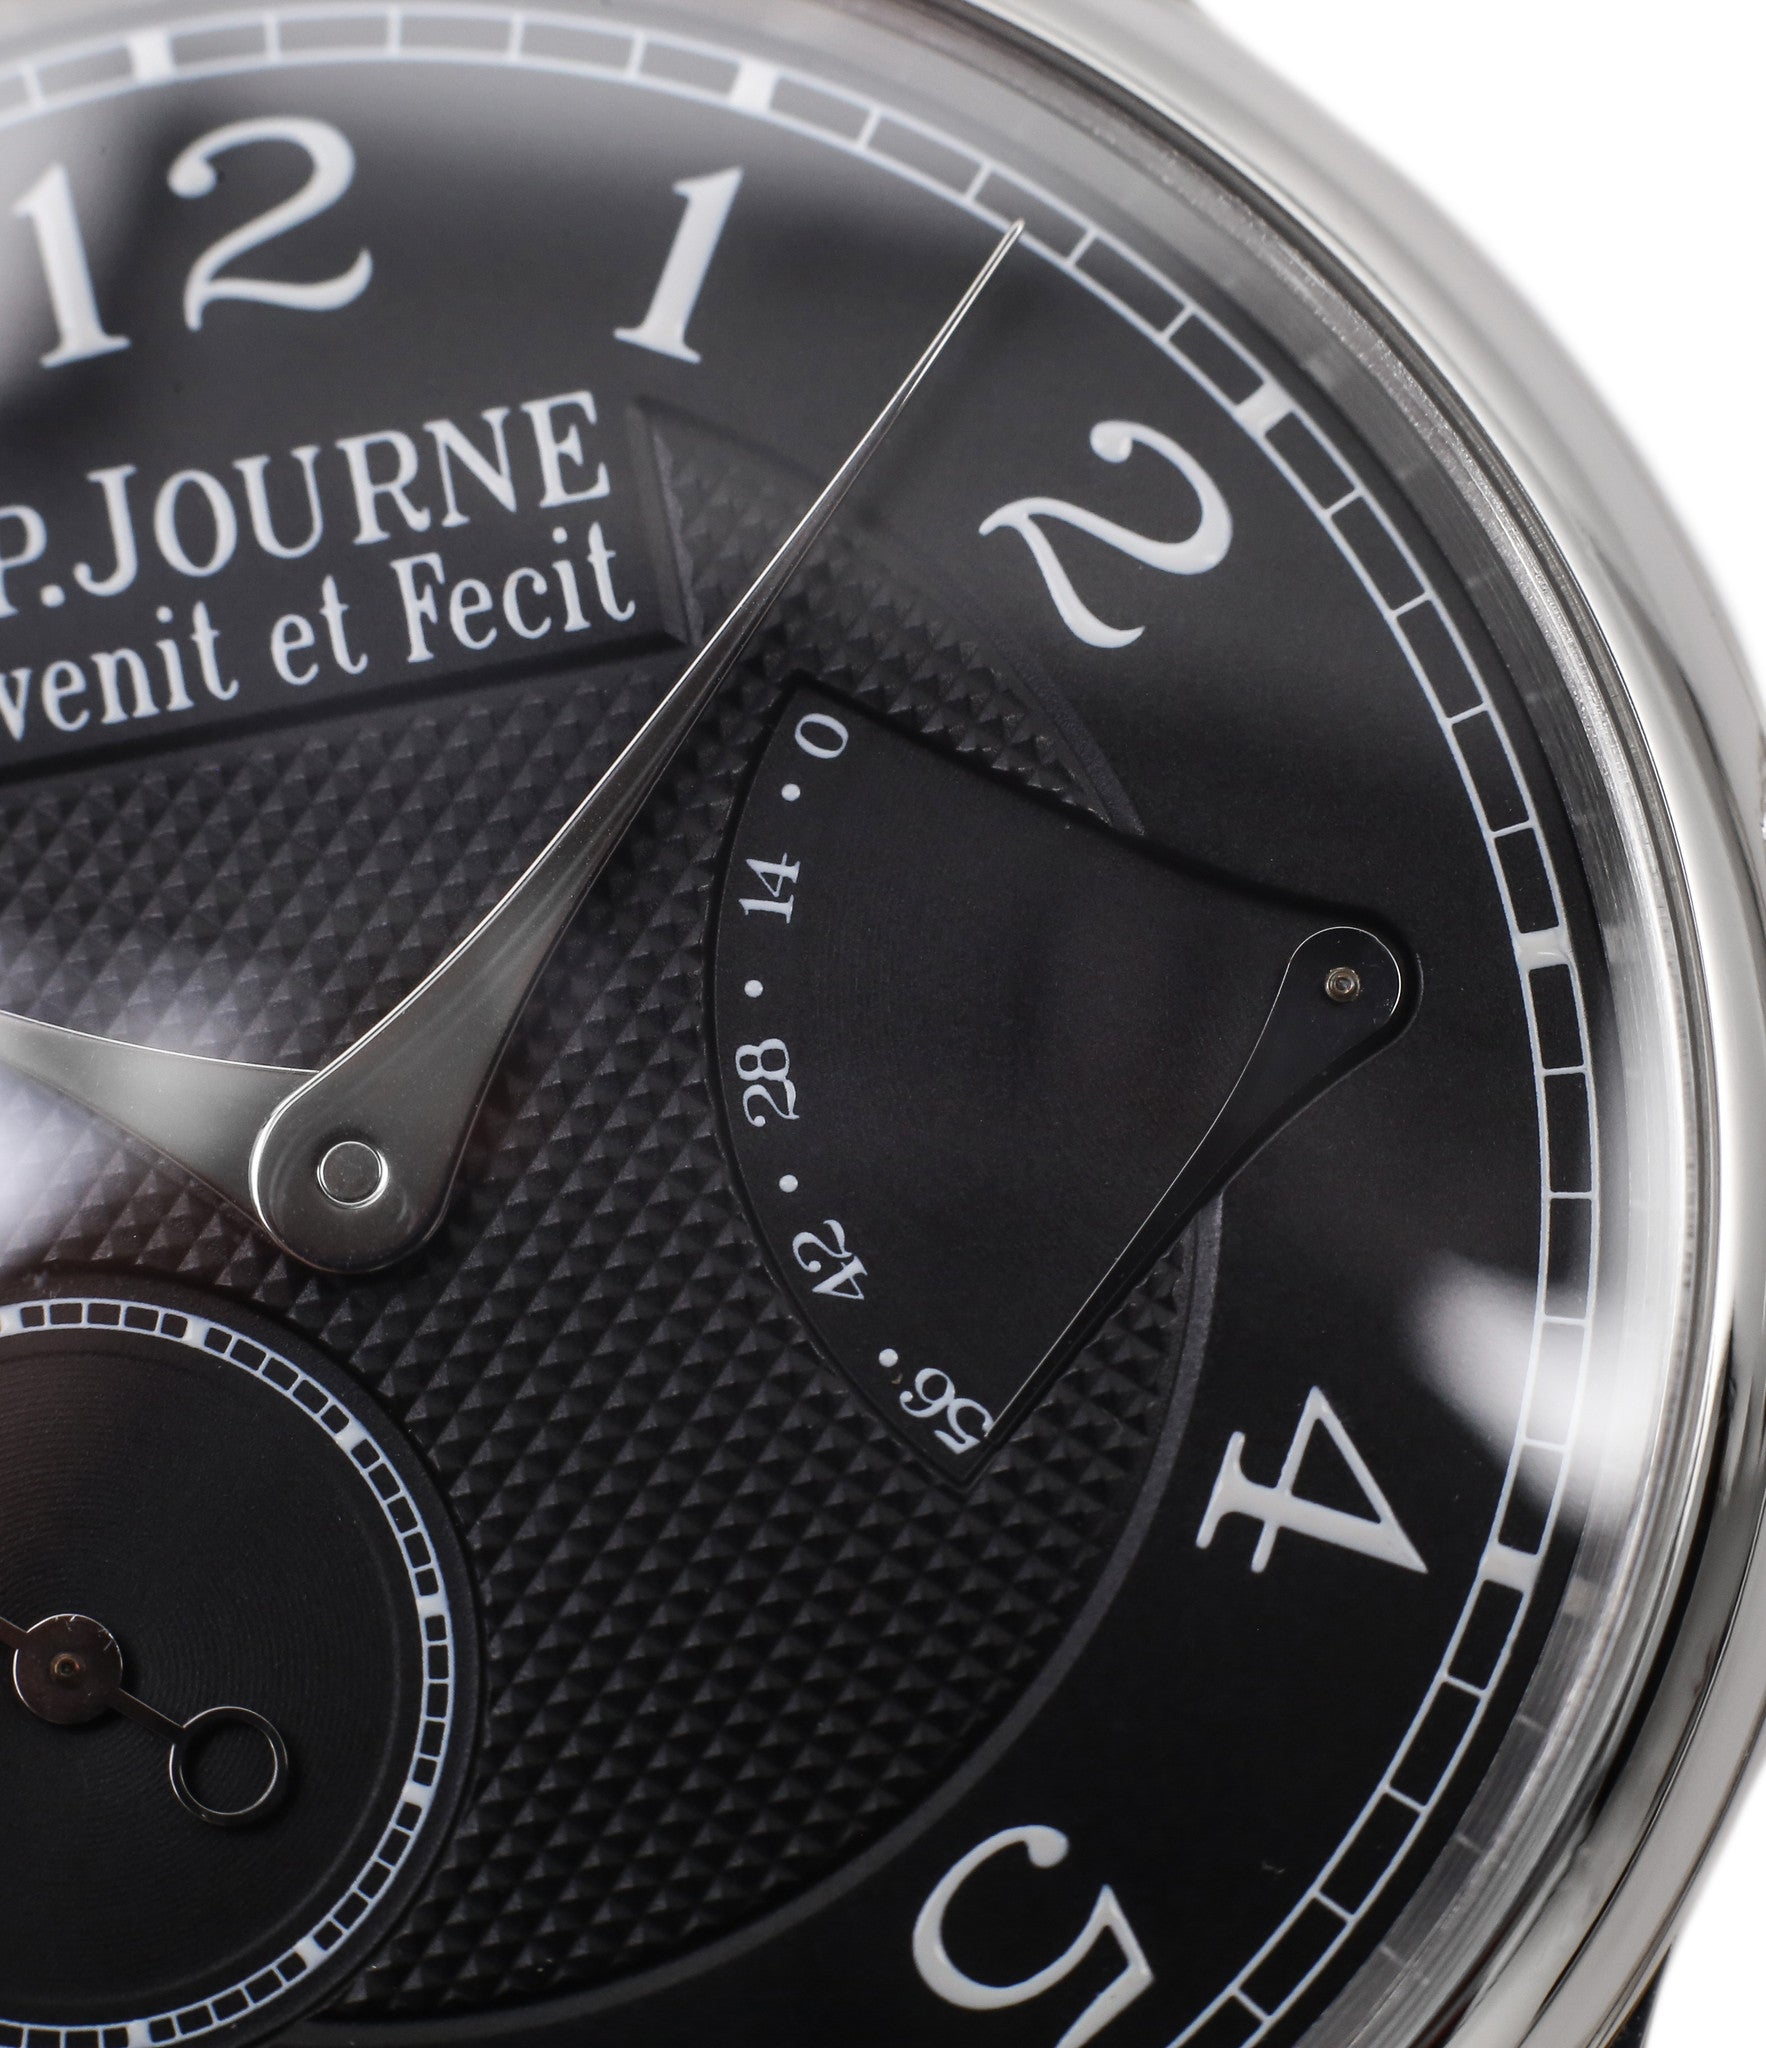 buy F. P. Journe Chronometre Souverain Black label platinum 38 mm watch for sale online at A Collected Man